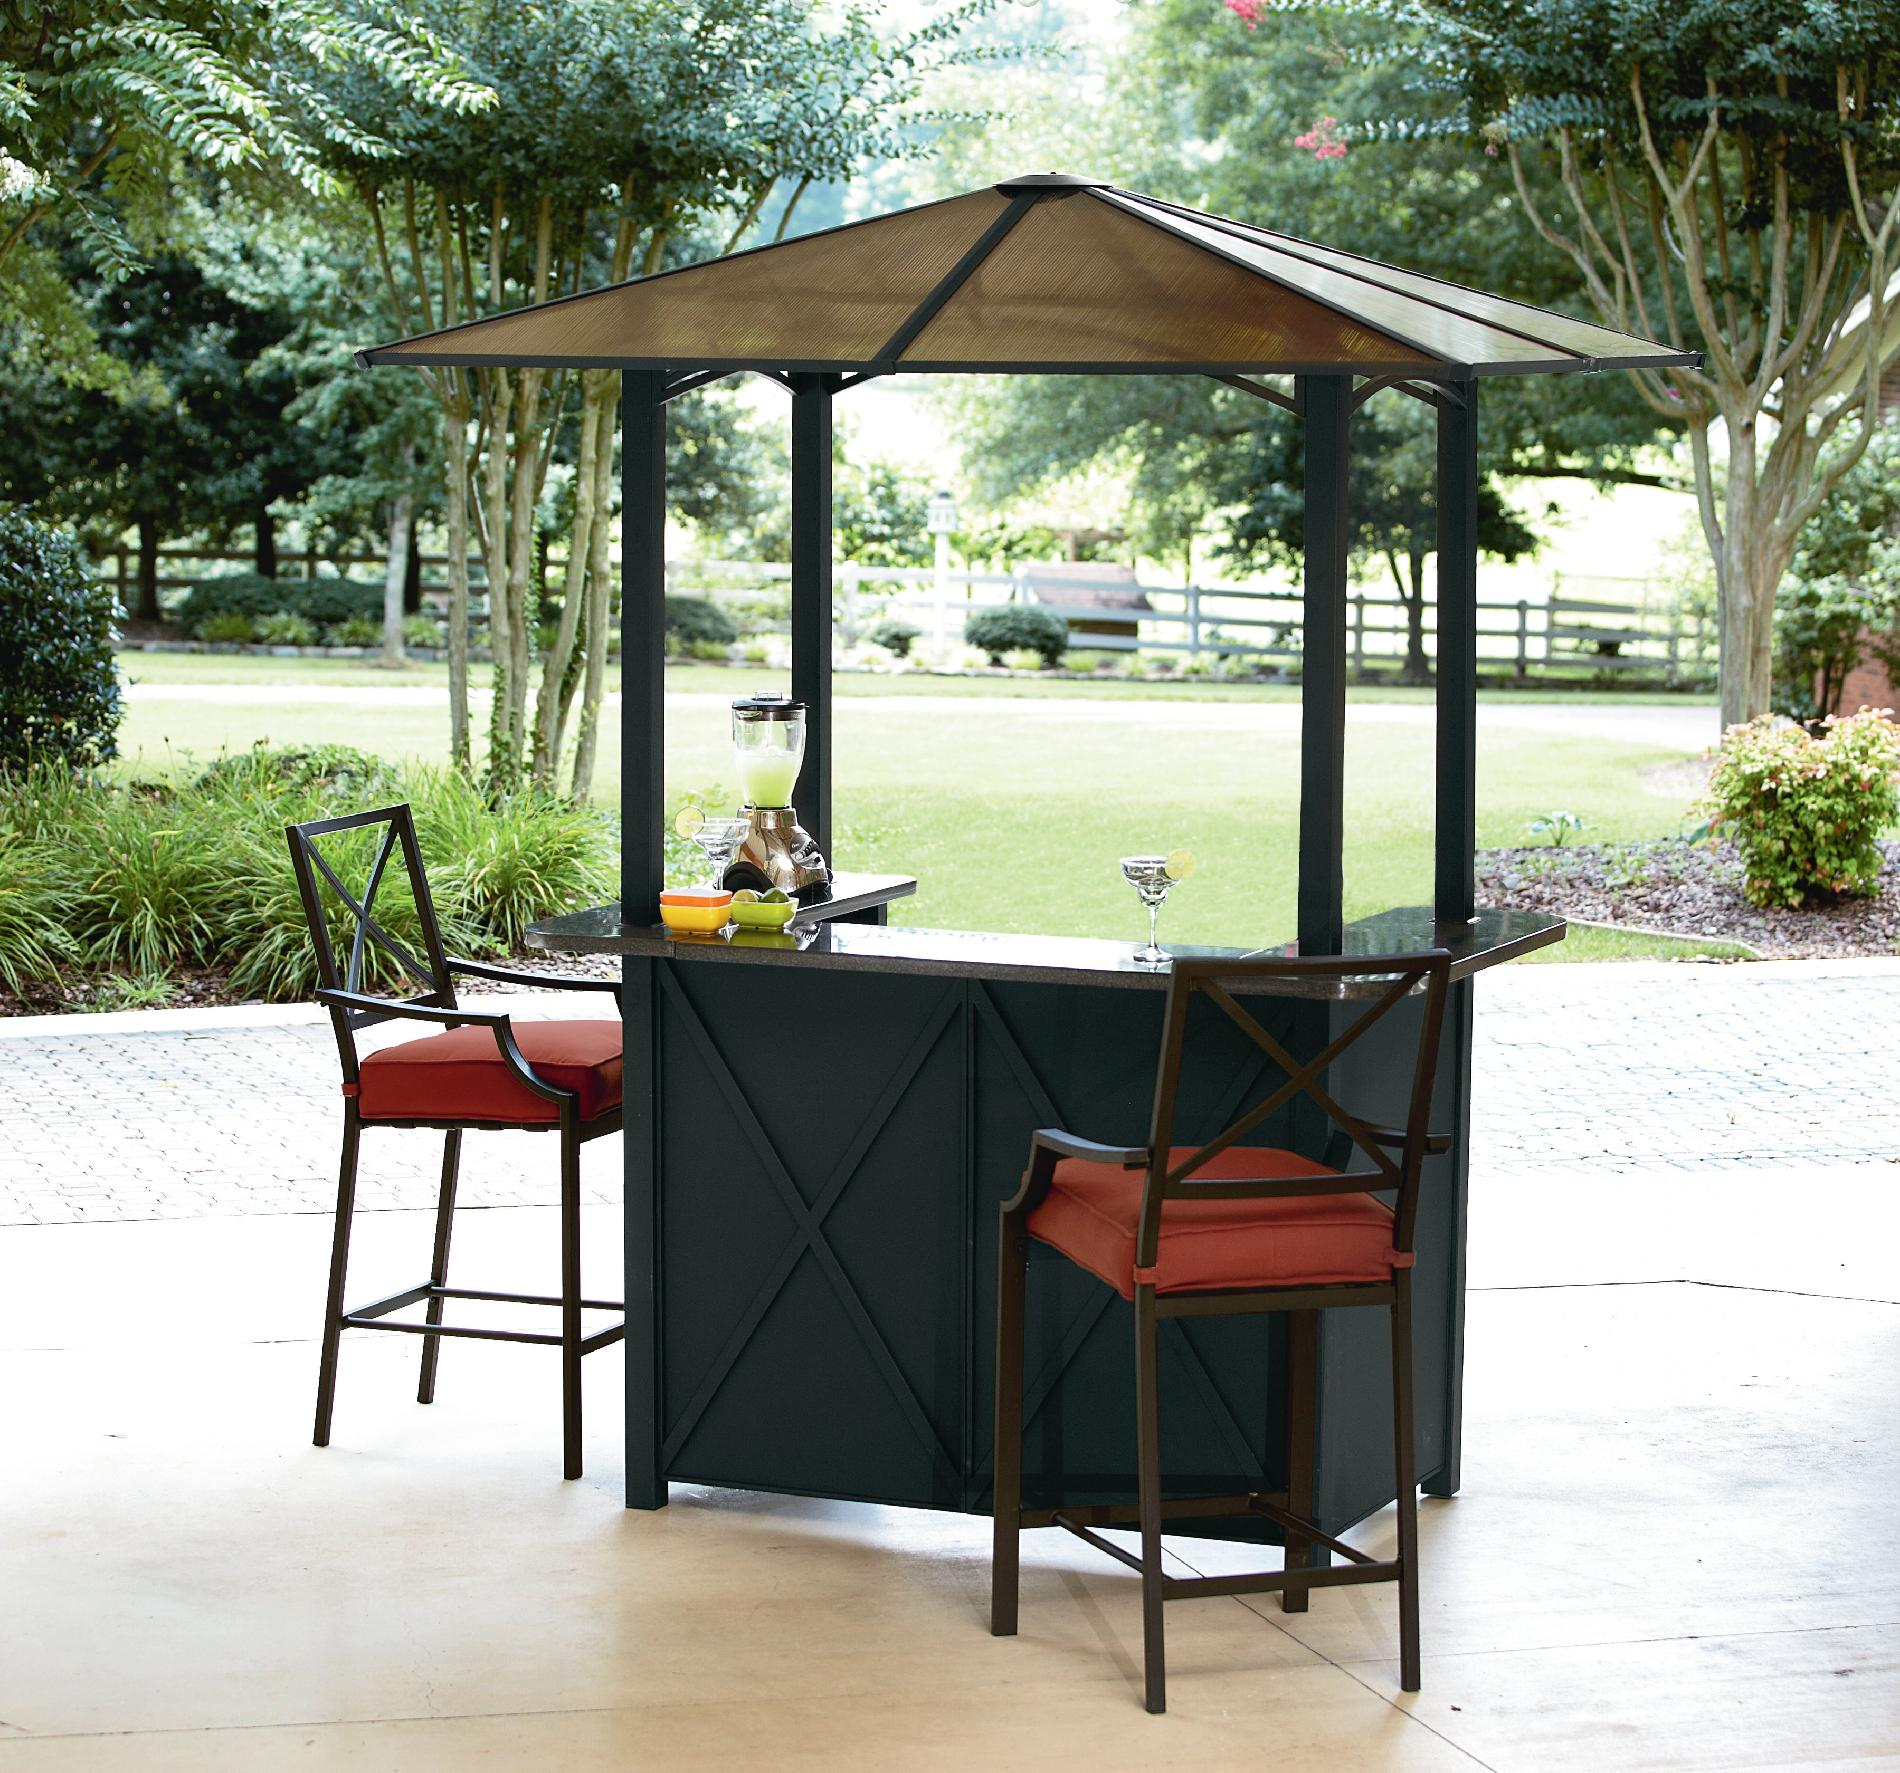 Outdoor Bar Sets with Canopy - Bring Your Outdoors To Life ... on Backyard Patio Bar id=58206